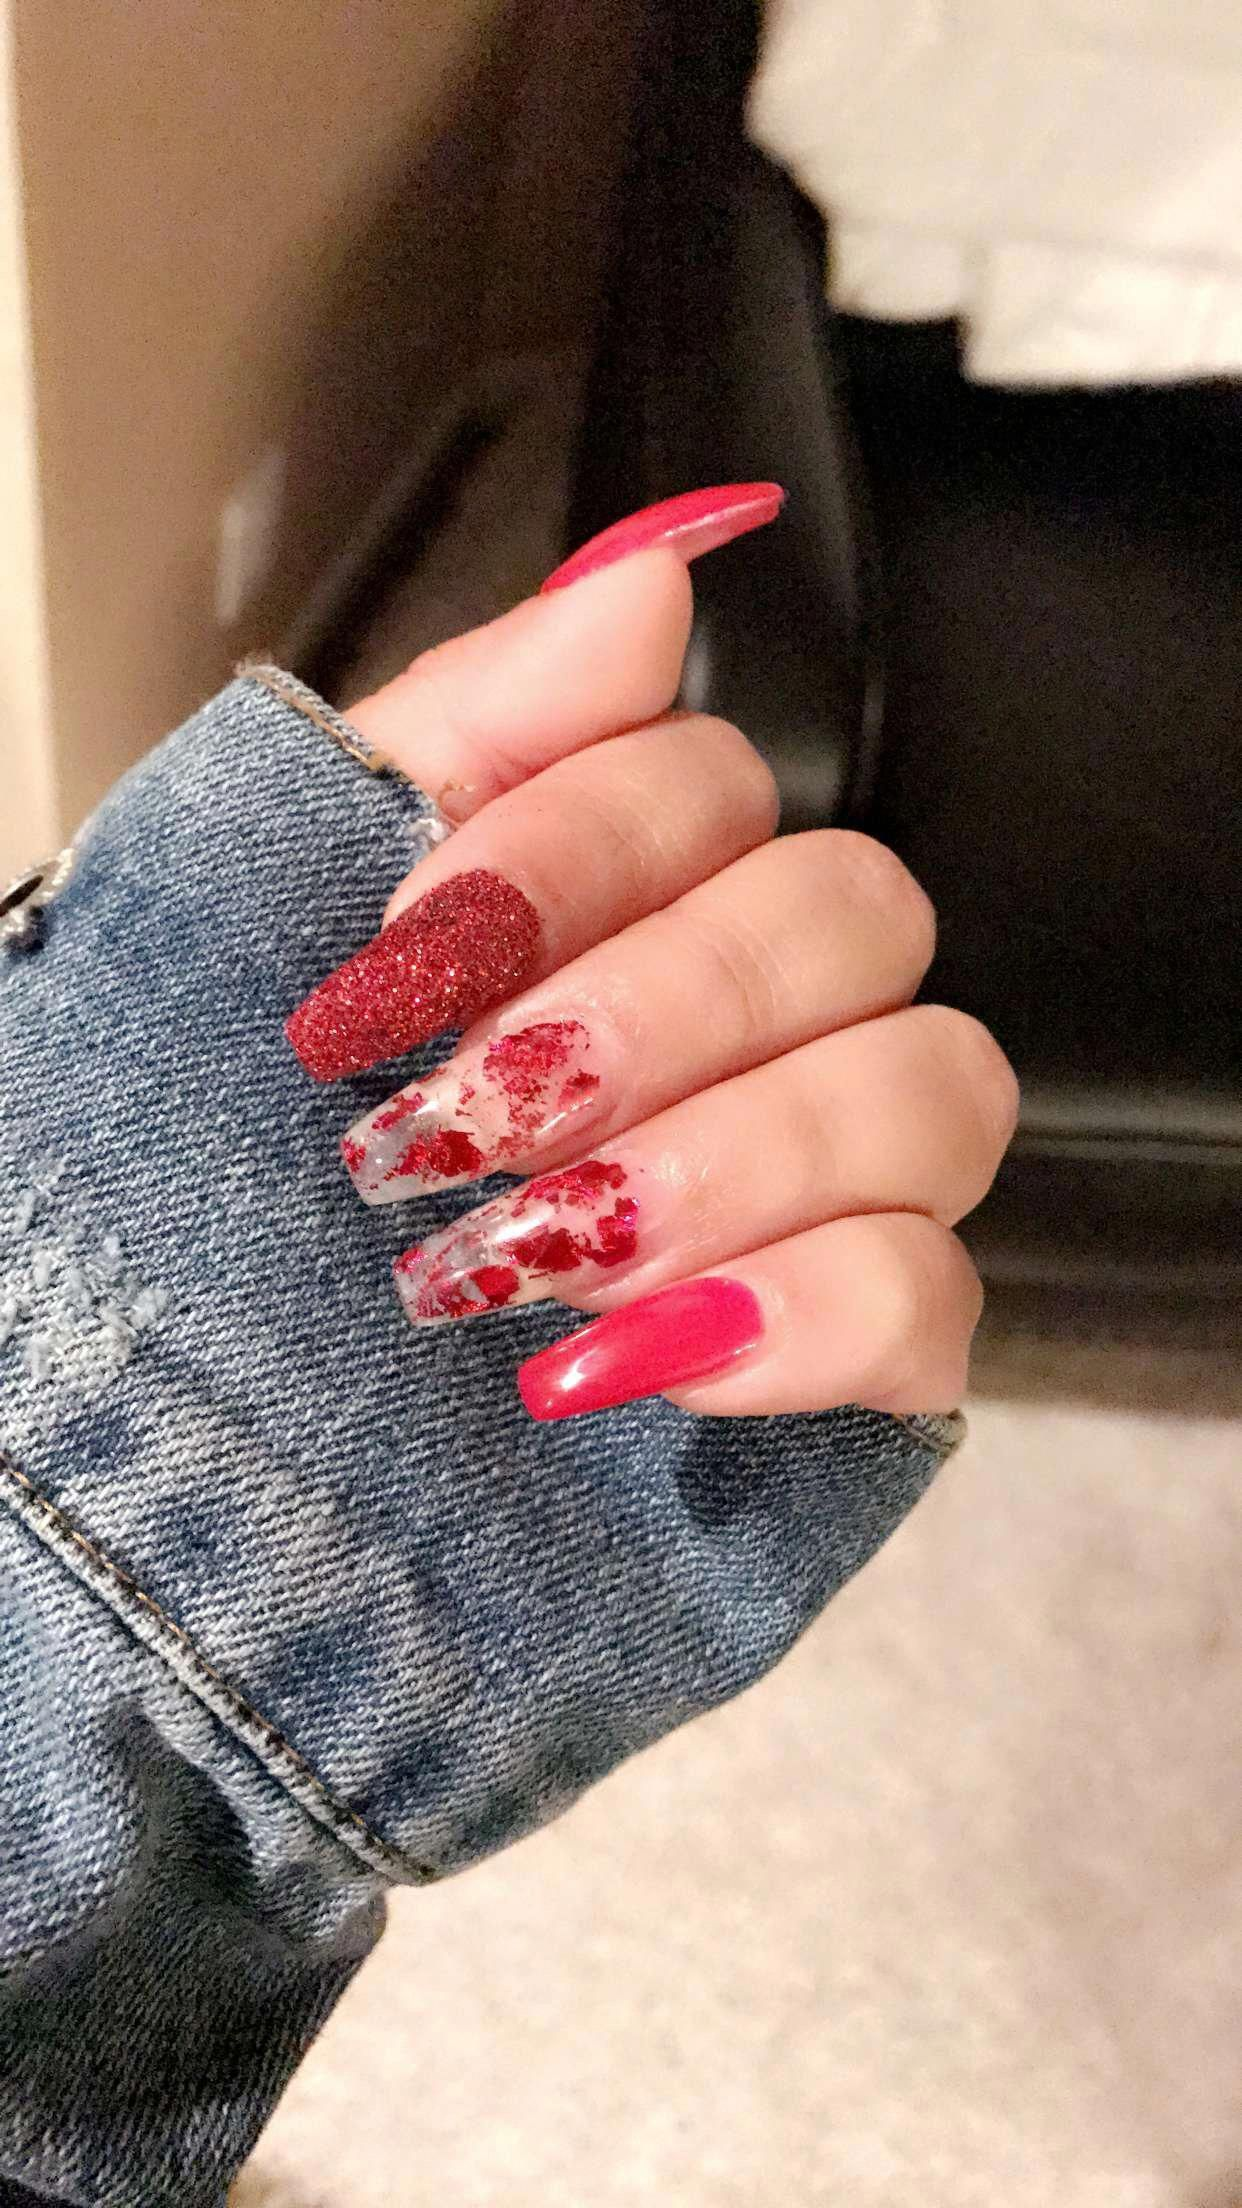 Red Acrylic Nails With Foil And Loose Glitter Ig Danyellpitts Beautifulacrylicnails Foil Nails Valentines Nails Red Acrylic Nails